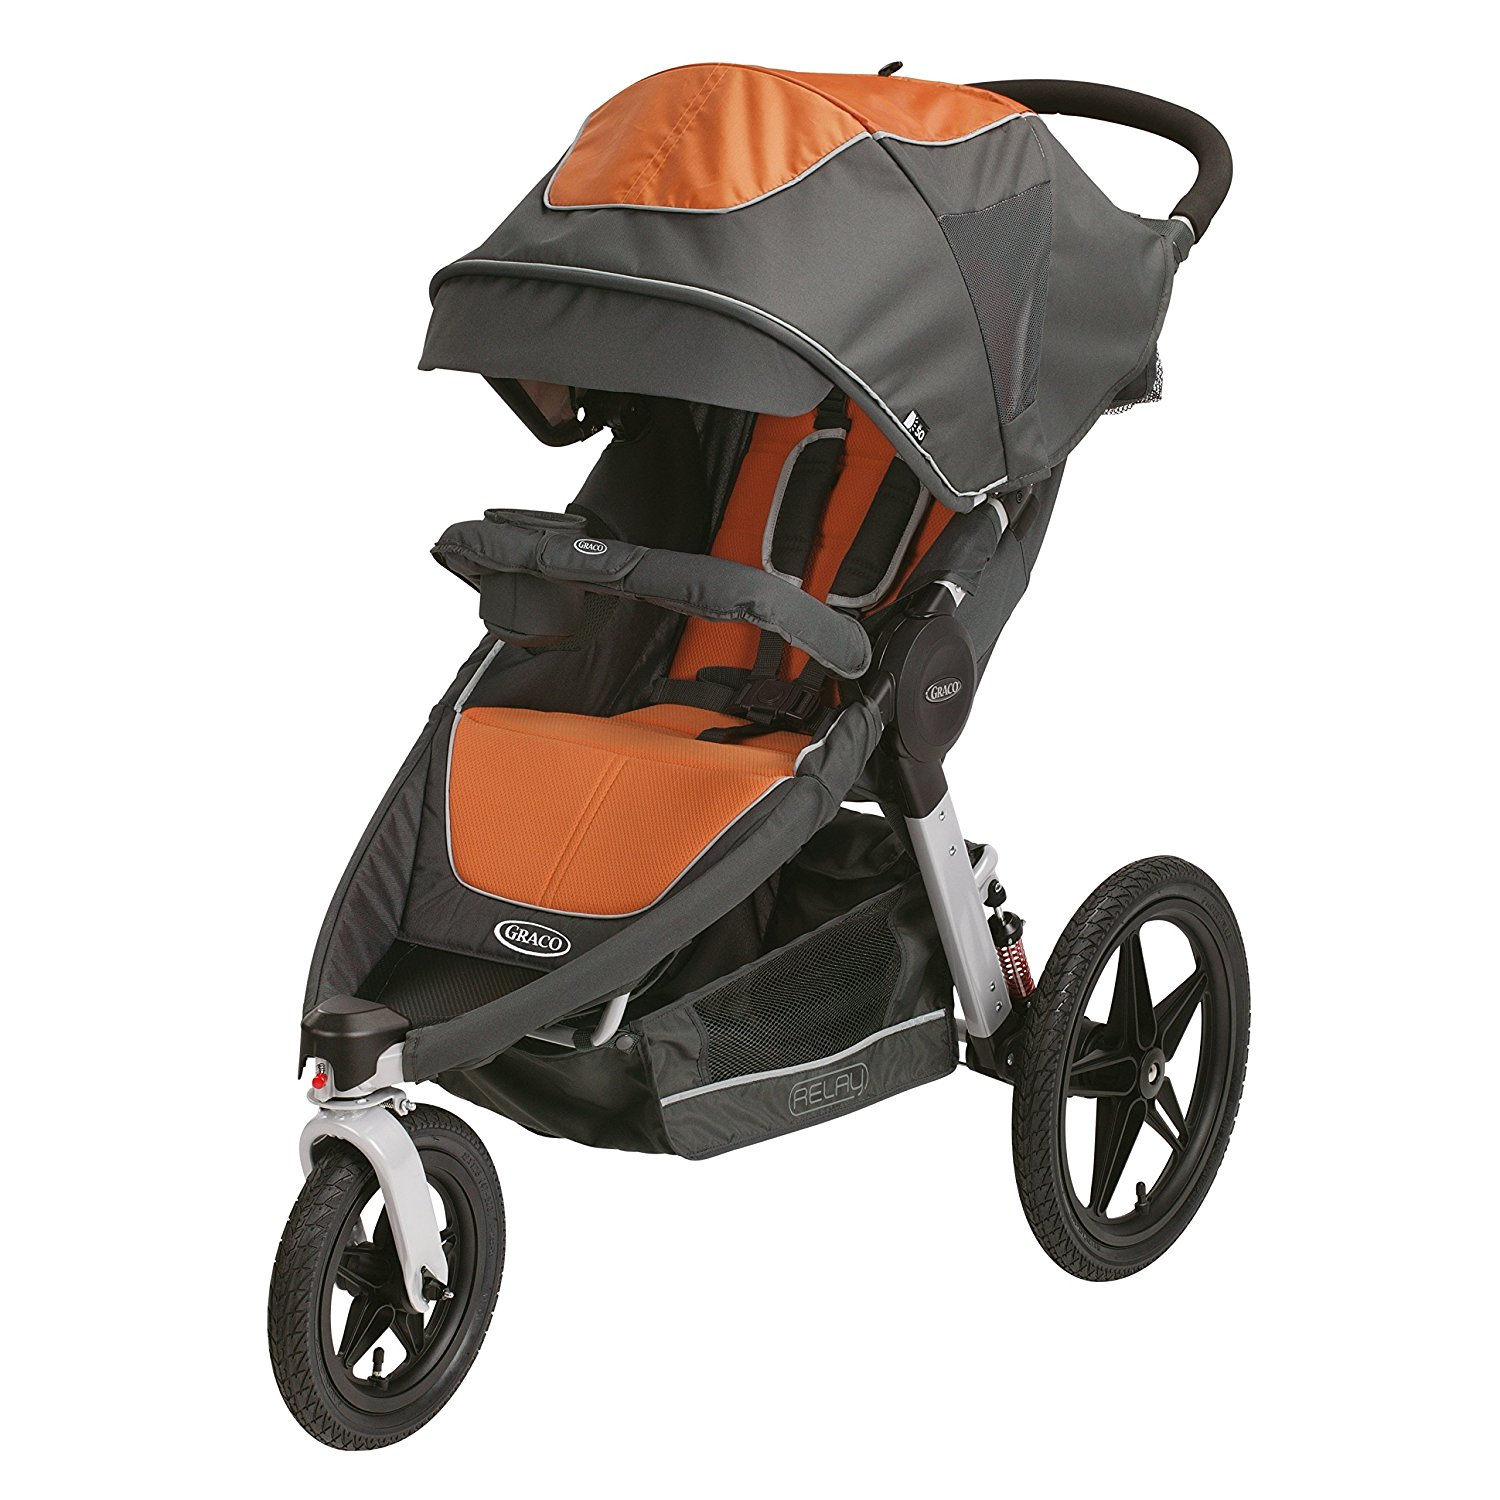 Graco Relay Jogging Stroller Product - $276.00